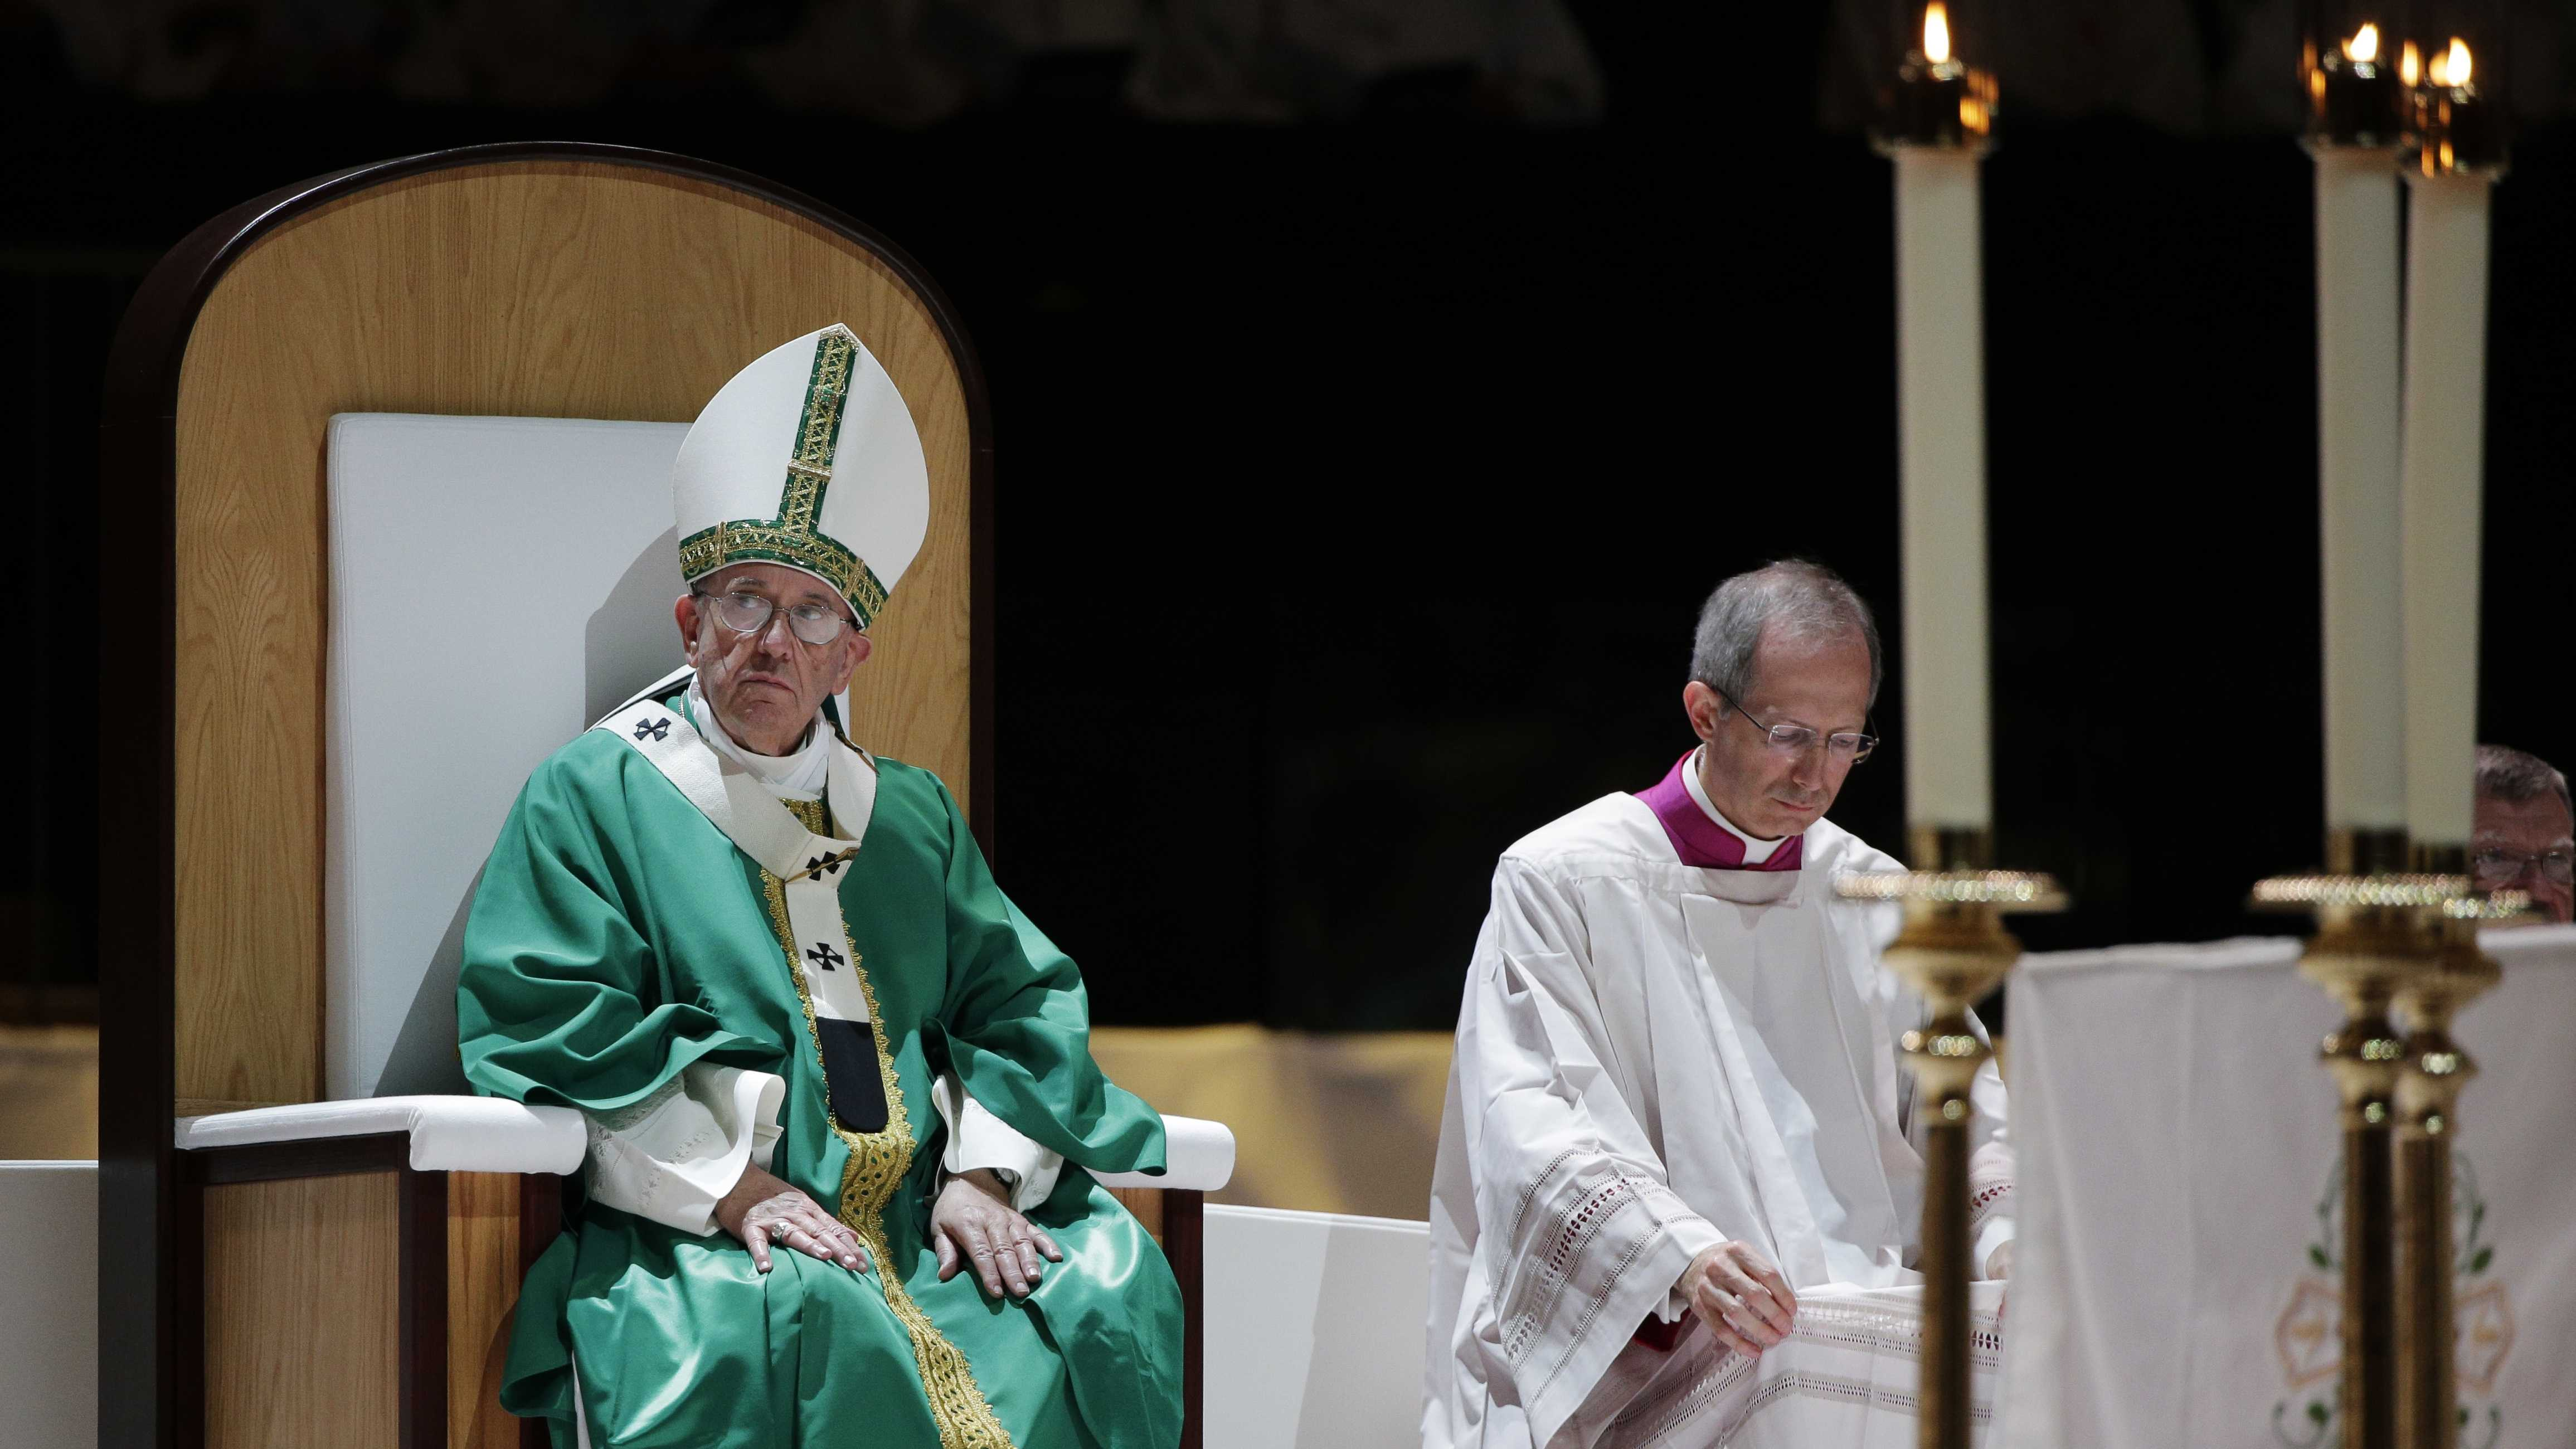 Pope Francis listens to the readings while celebrating Mass at Madison Square Garden, Friday, Sept. 25, 2015, in New York. (AP Photo/Julie Jacobson, Pool)